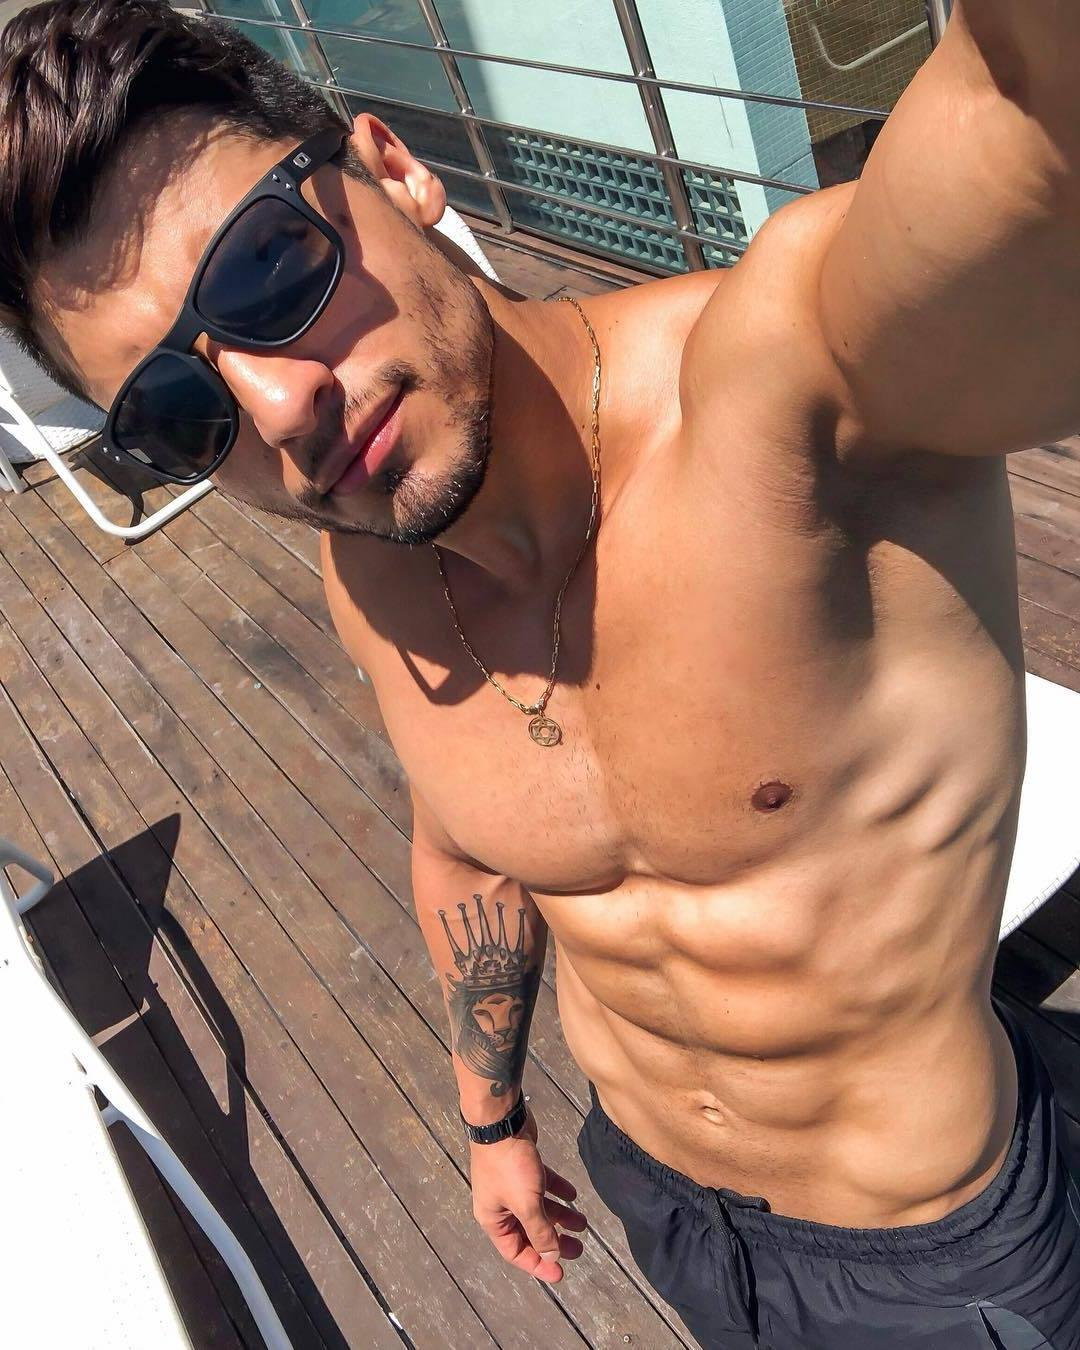 hot-guys-with-sunglasses-shirtless-fit-body-arm-king-lion-tattoo-small-male-nipples-selfie